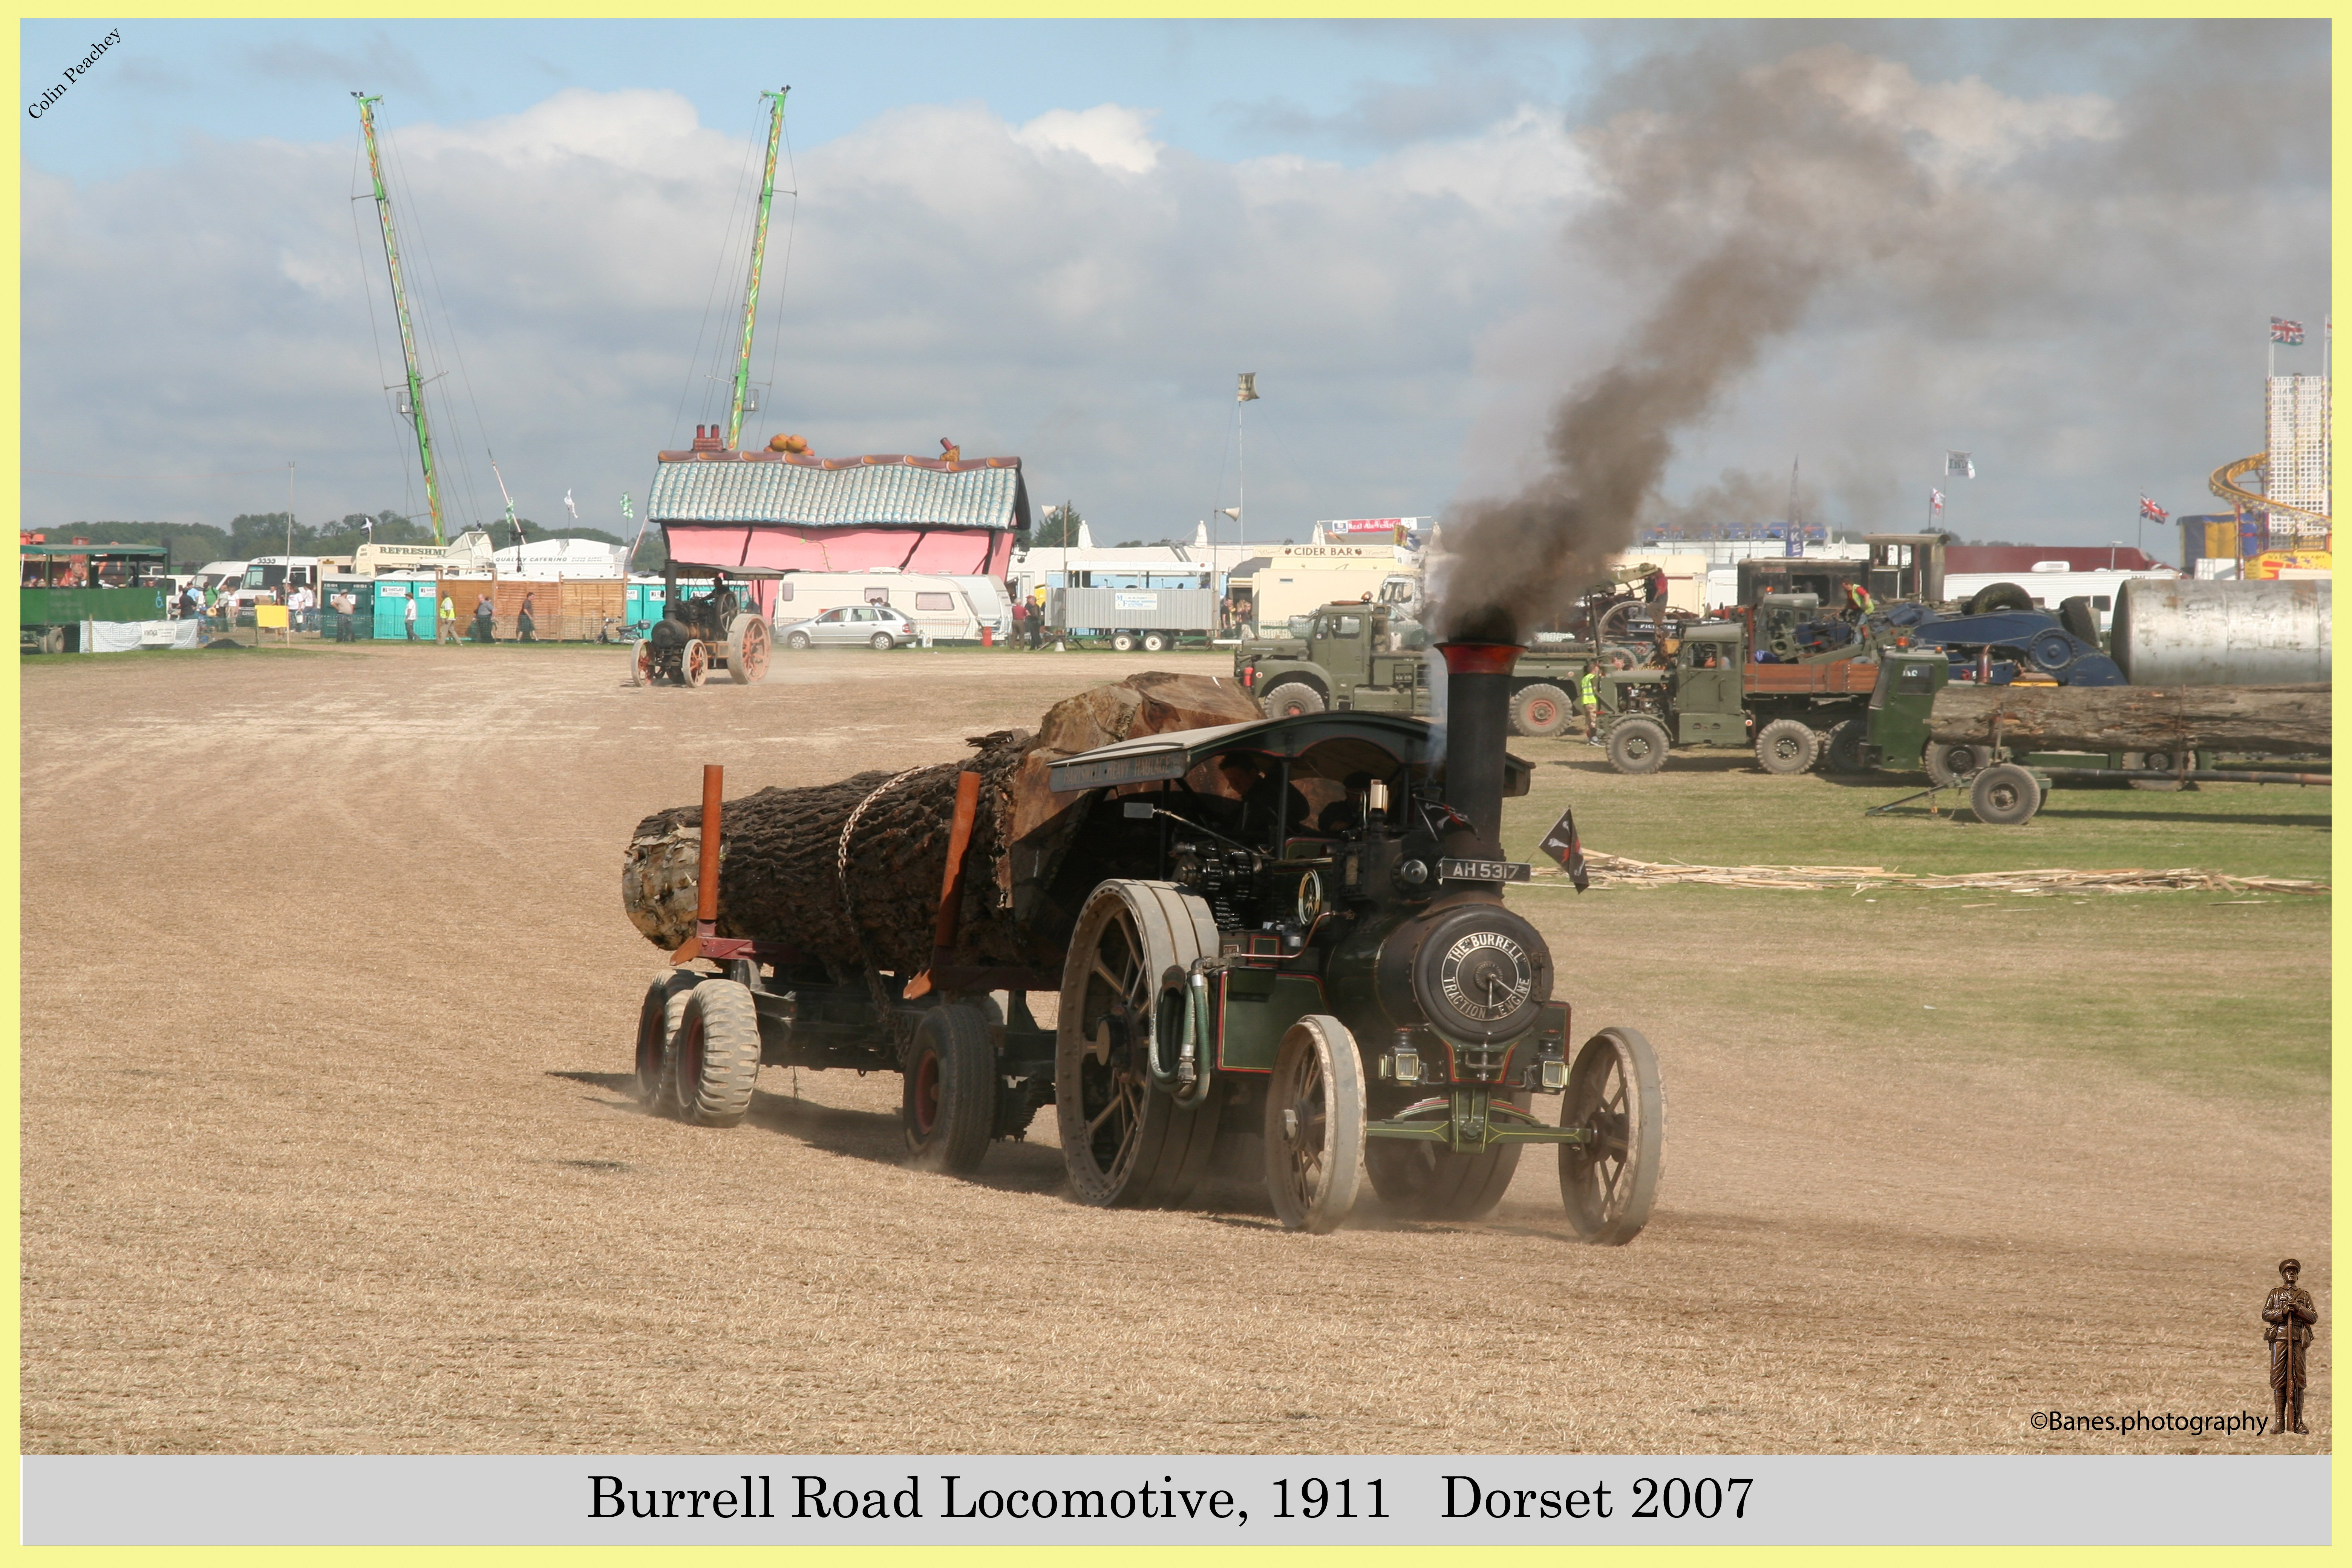 Burrell Road Locomotive, Reg No. AH 5317, 1911